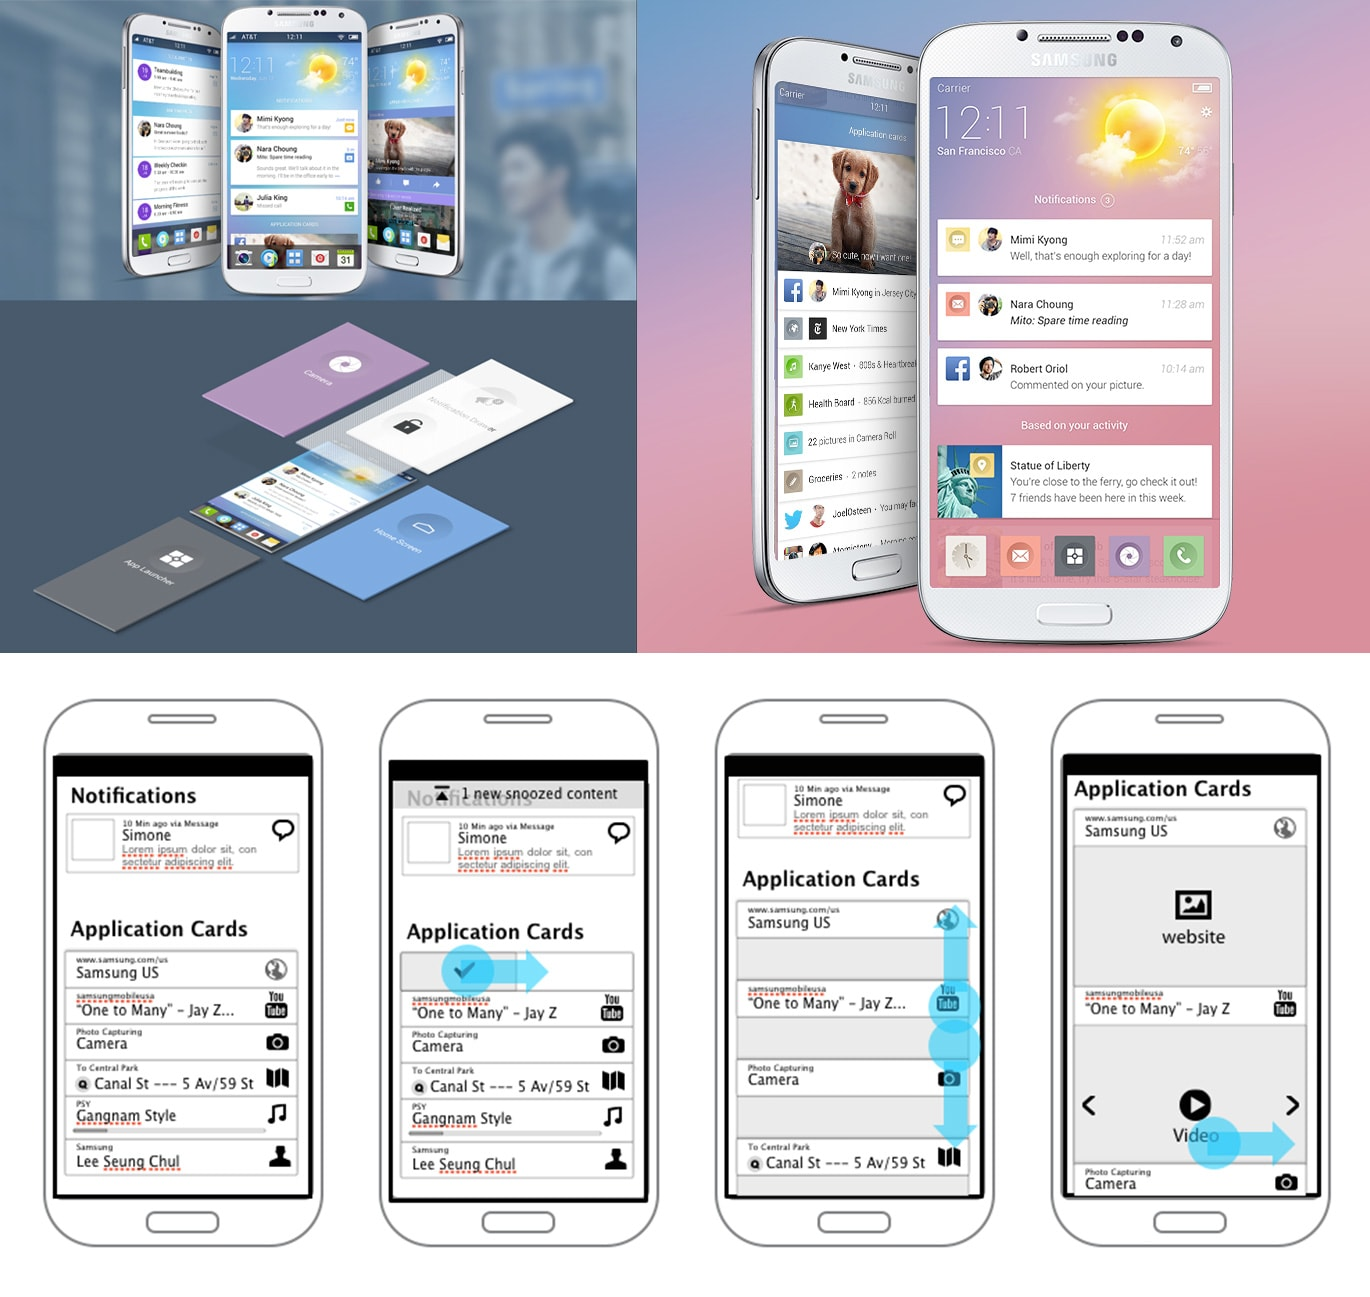 Samsung Mobile. Interface and Interaction Design.